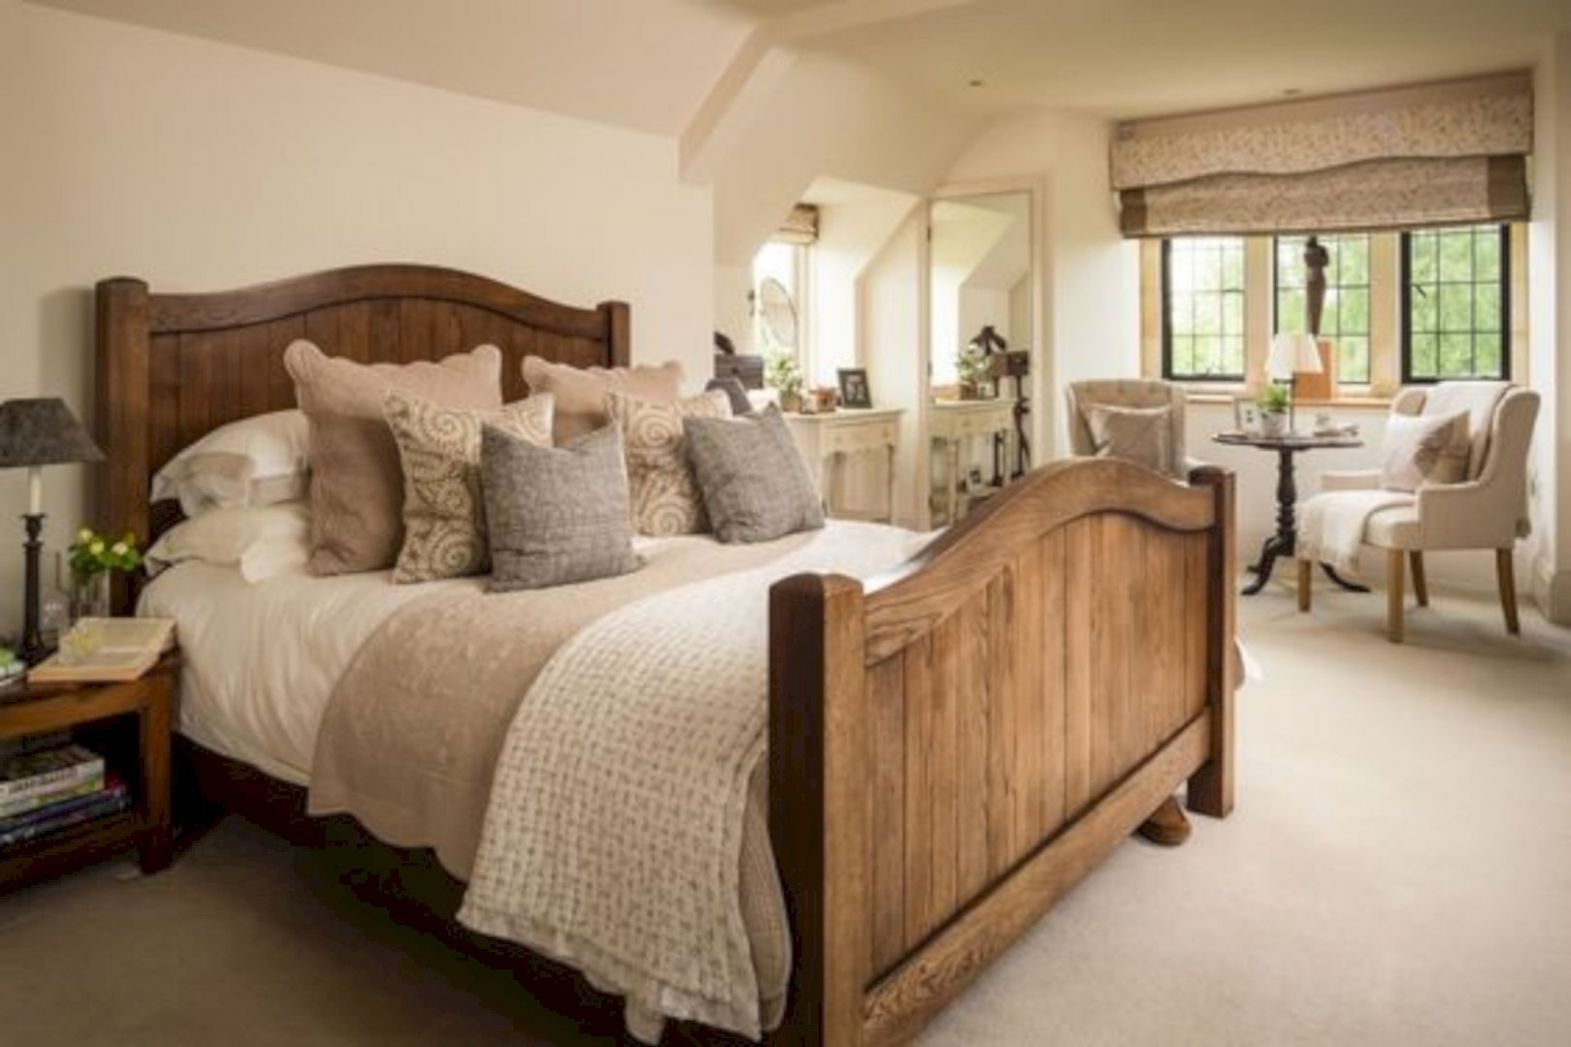 11 Amazing English Country Room Decoration Ideas (With images ..